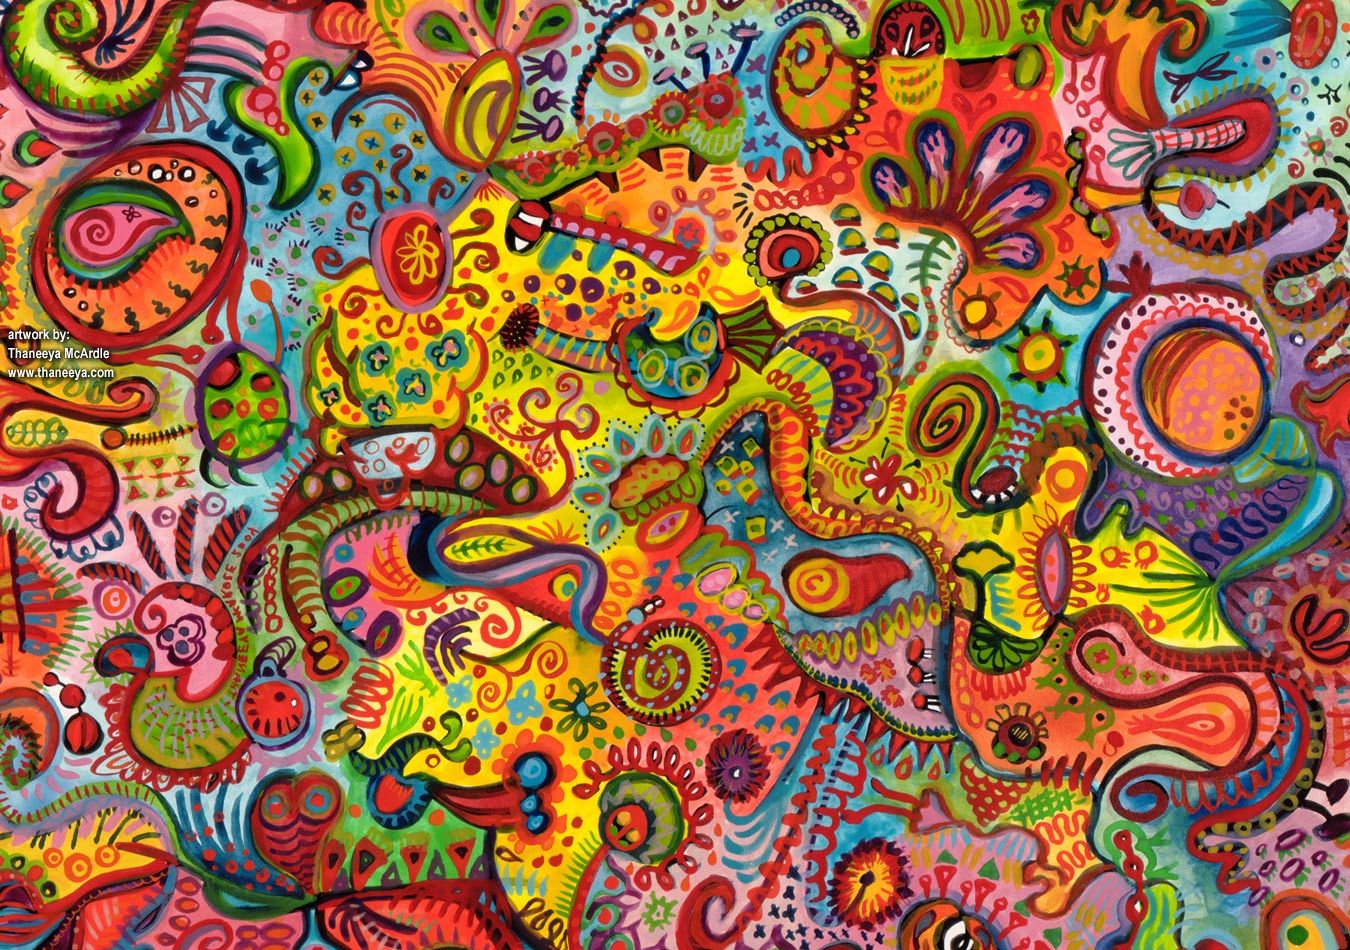 Free Twitter Backgrounds :: Featuring the Funky Art of Thaneeya ...